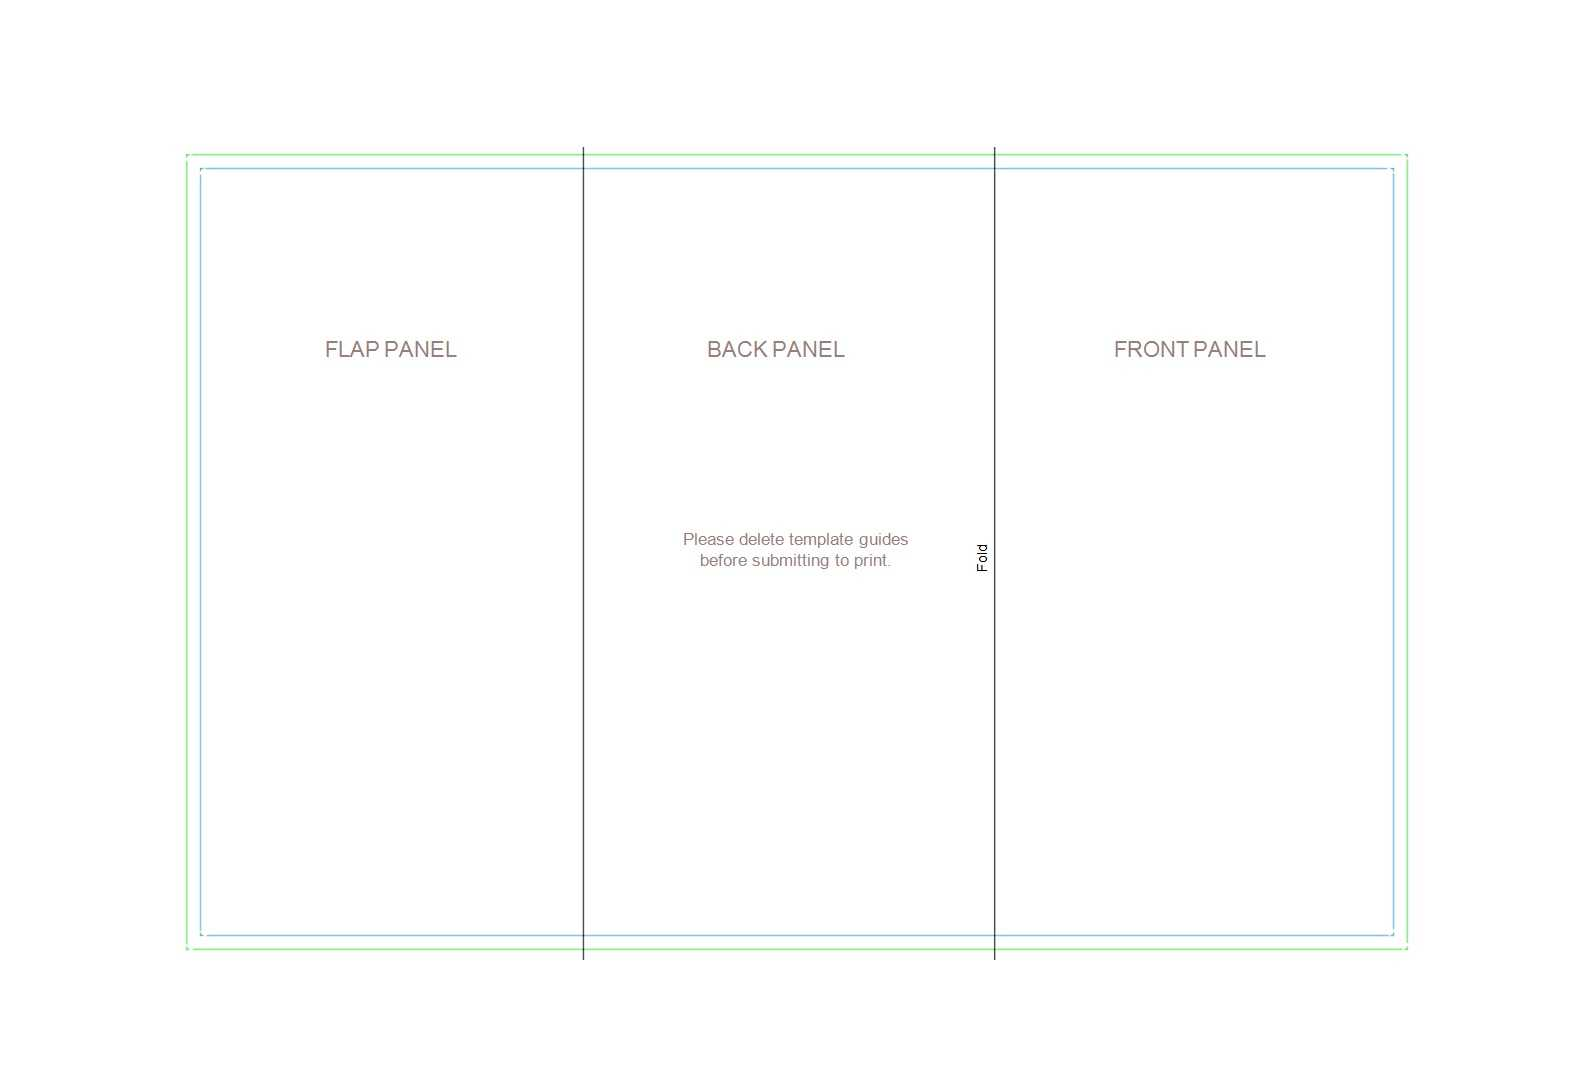 50 Free Pamphlet Templates [Word / Google Docs] ᐅ Templatelab Pertaining To Brochure Template Google Docs